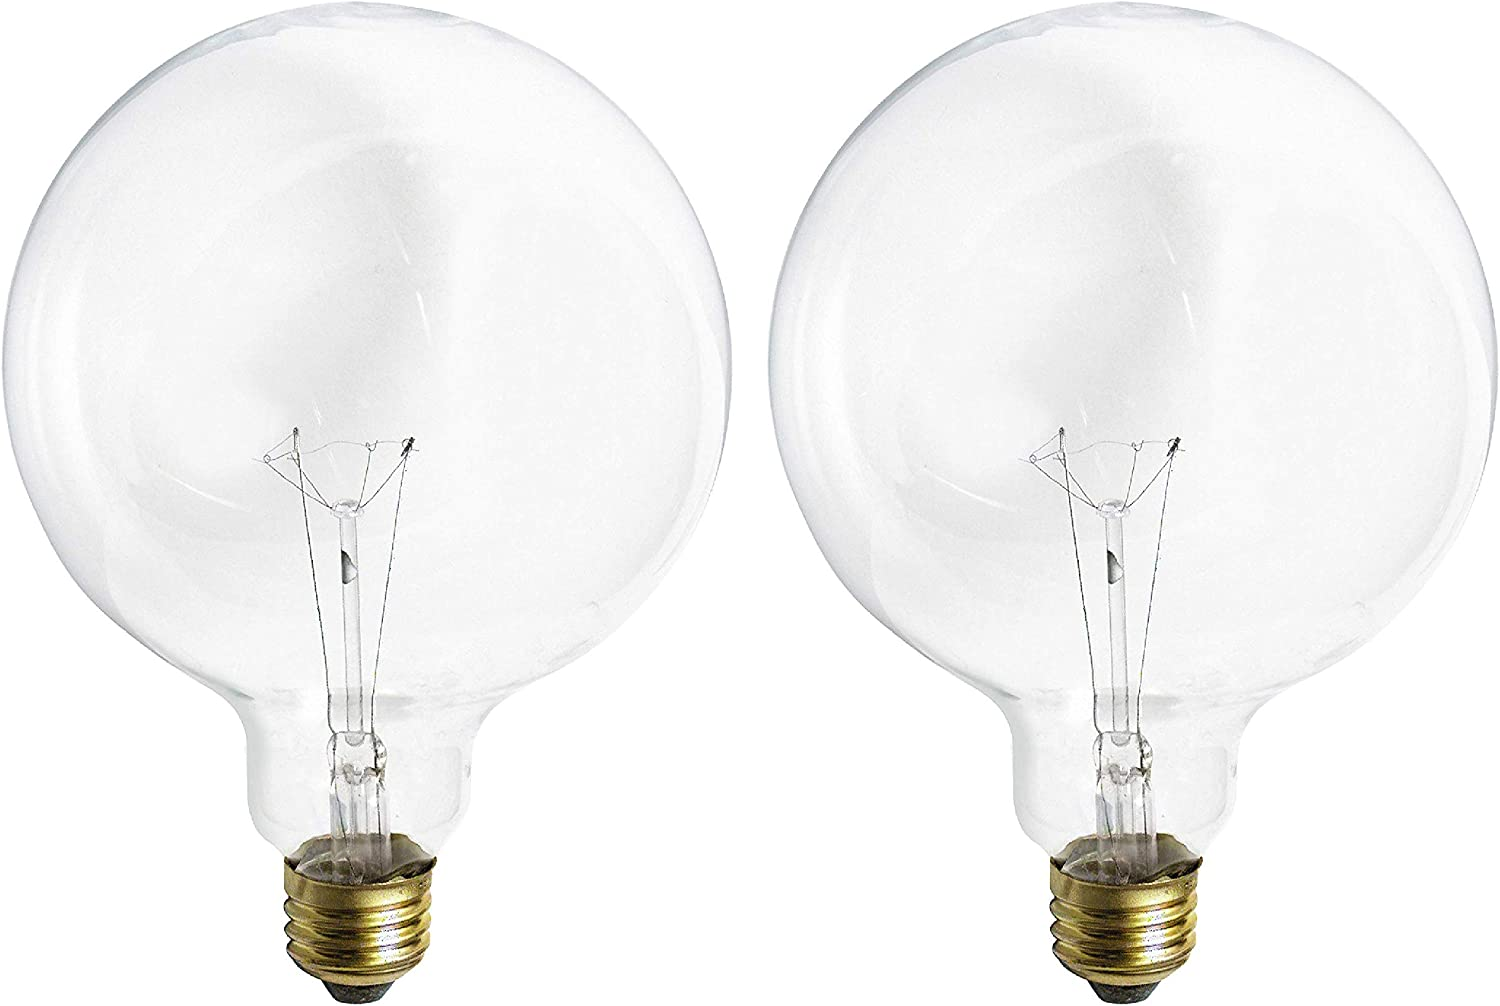 (2 Pack) G40 Incandescent Light Bulb 2700K Soft Light, Decorative Globe Light Bulbs,E26 Medium Base, Perfect use for Decor, Pendant, Bathroom/Vanity Mirror Makeup, Dimmable. (Crystal-Clear, 100-Watt)